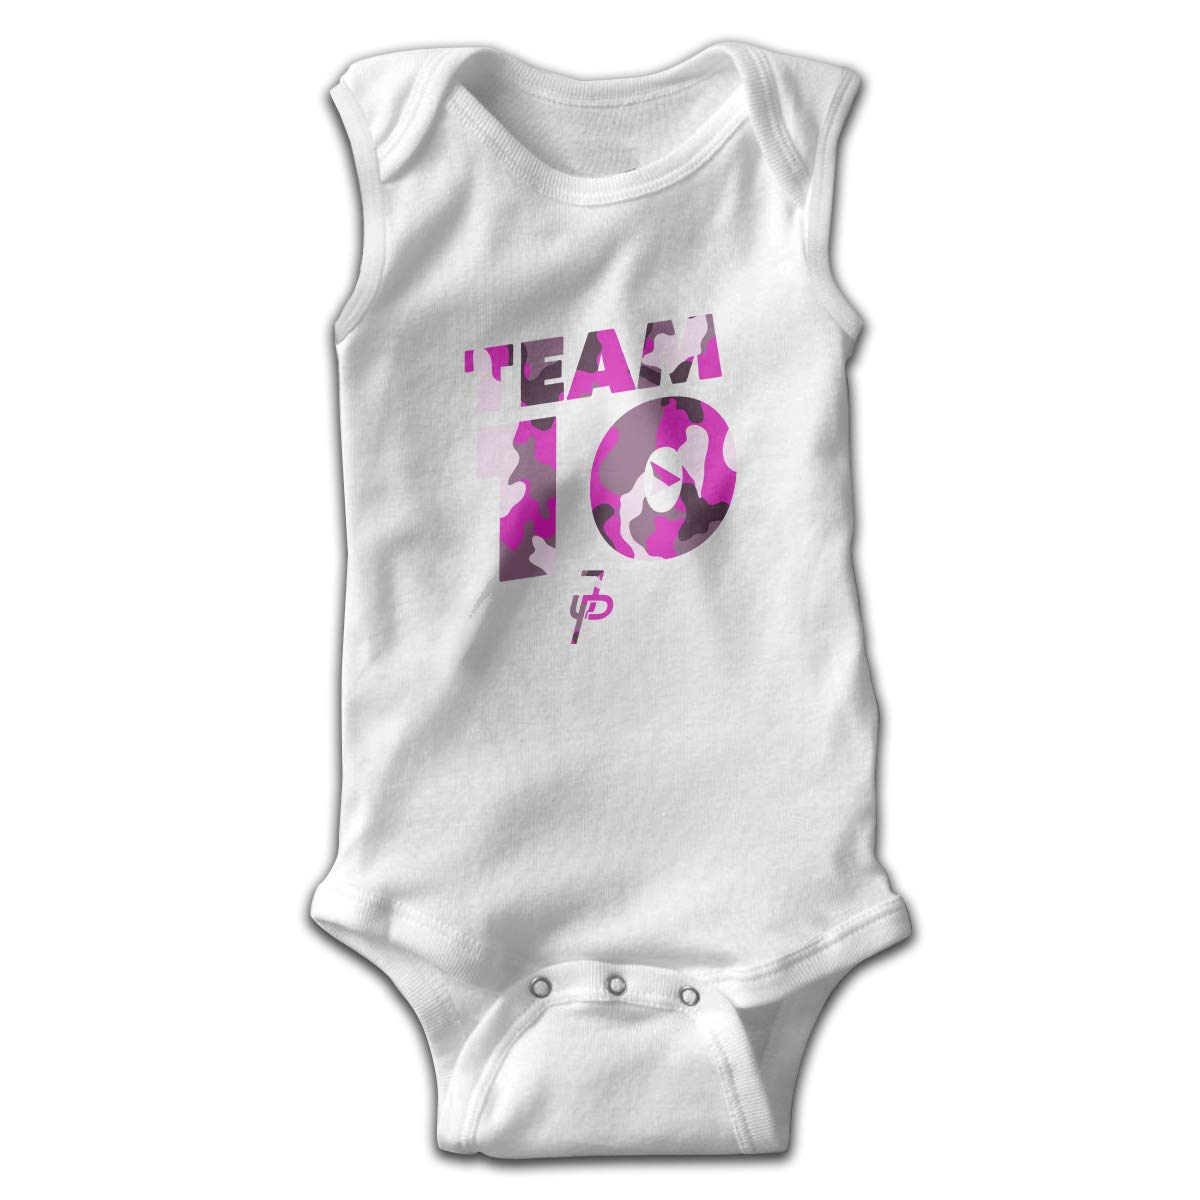 Kddcasdrin Jake Paul X Team 10 Pink Sleeveless Bodysuits Rompers Outfits